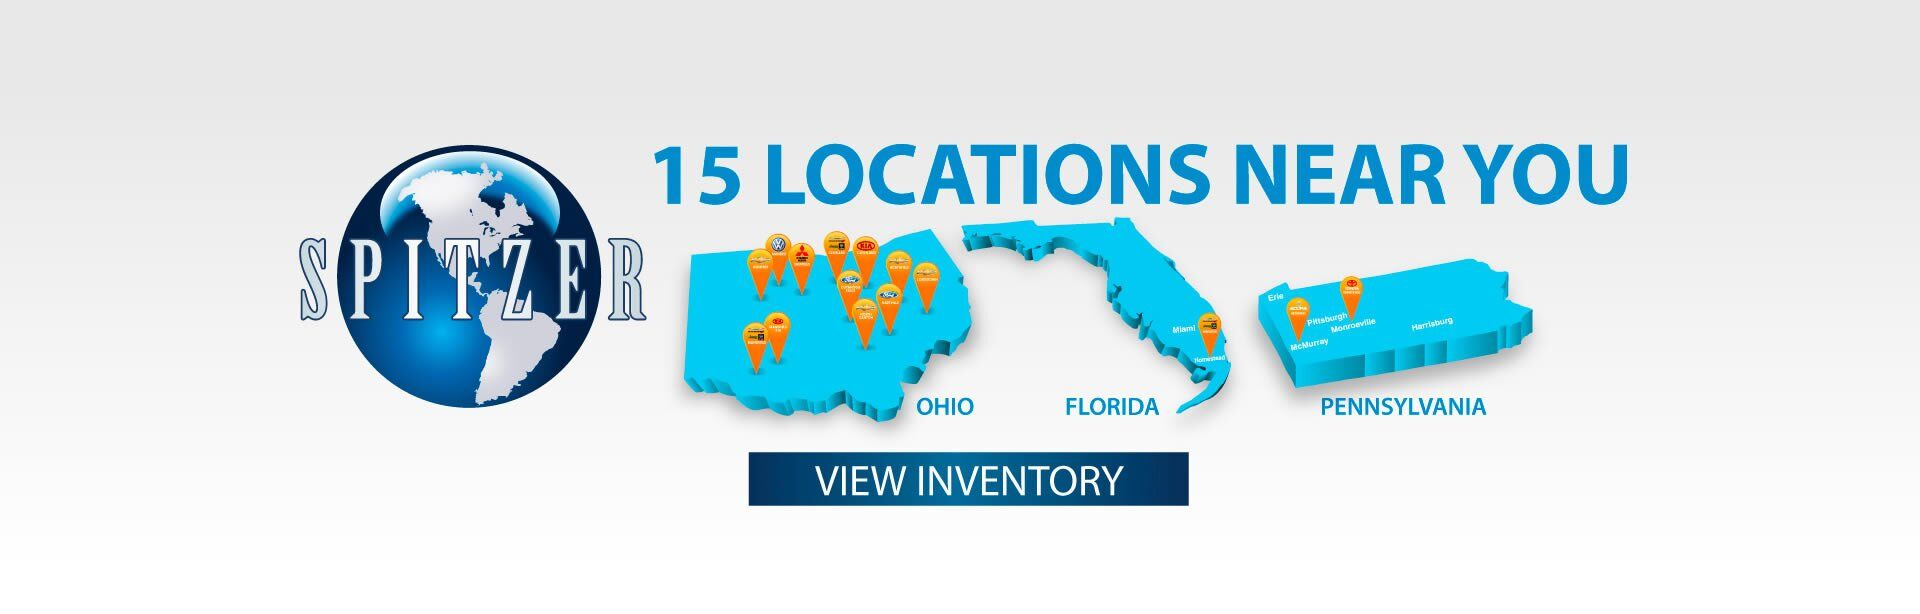 Spitzer Automotive : 15 Locations to choose from